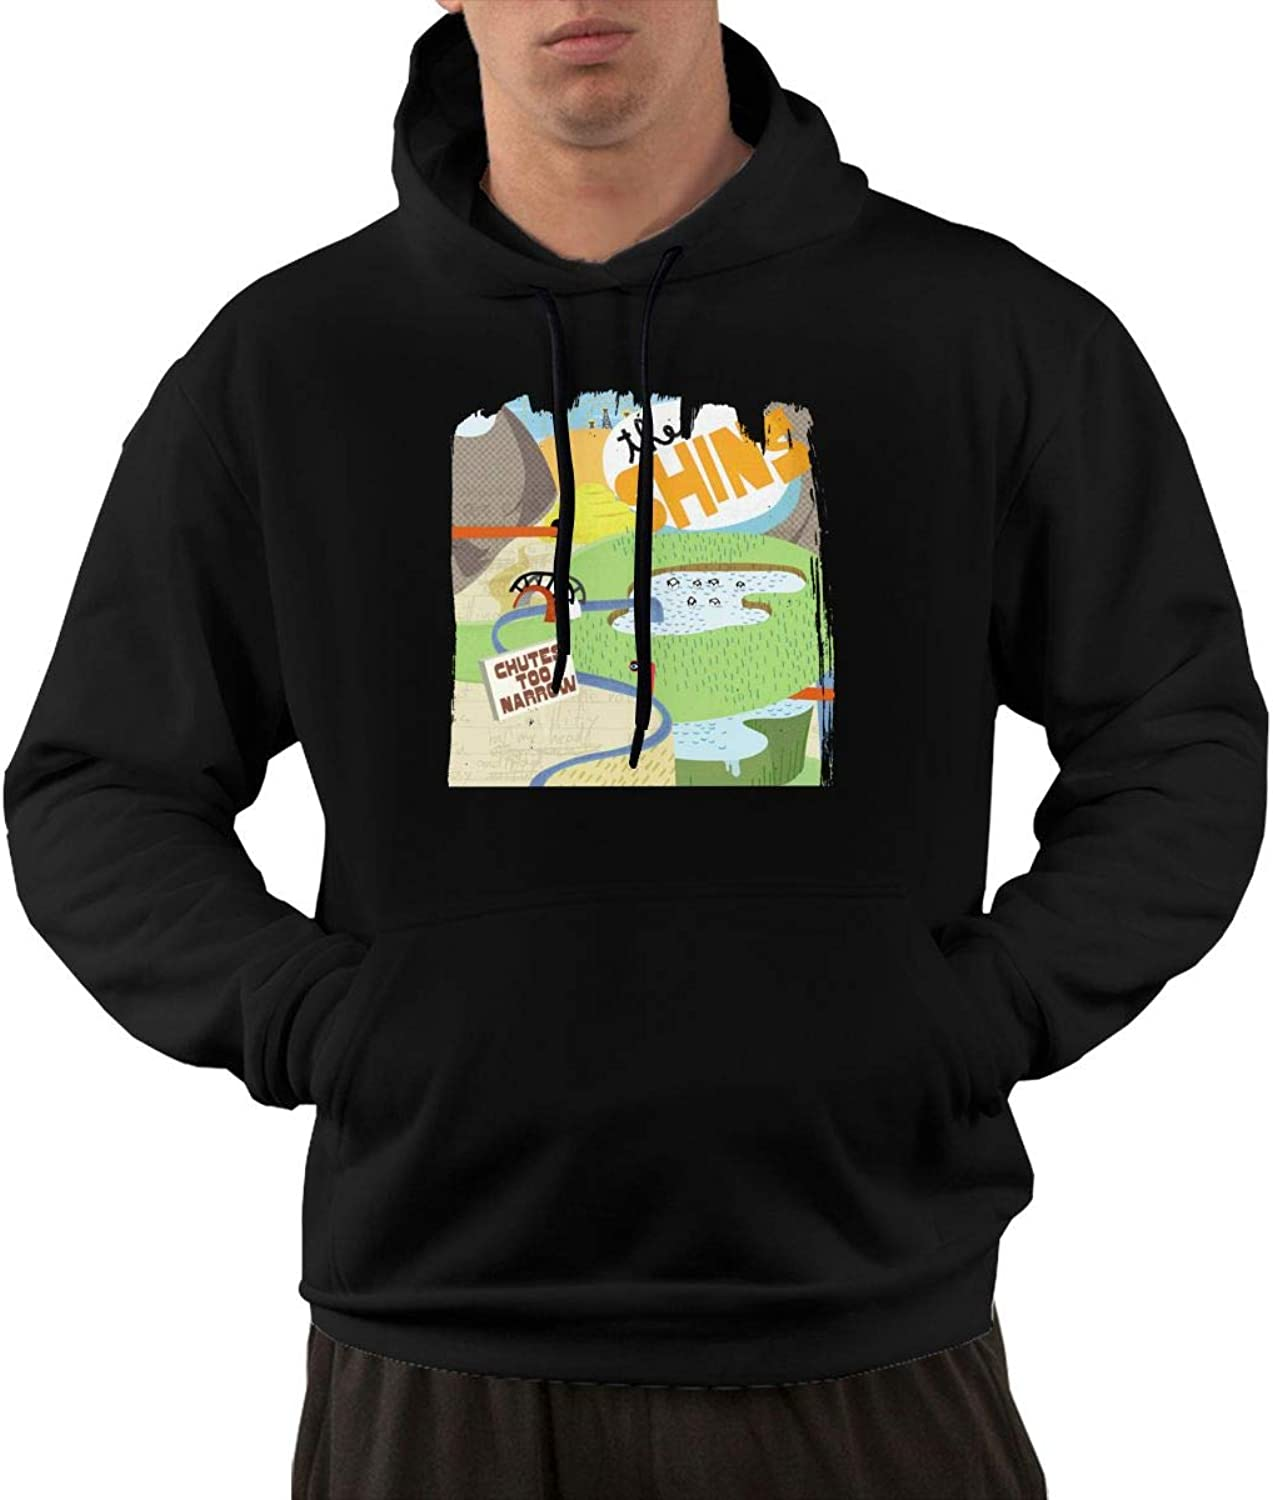 AlbertV Mens The Shins Chutes Too Narrow Hoodies Sweater With Pocket Black